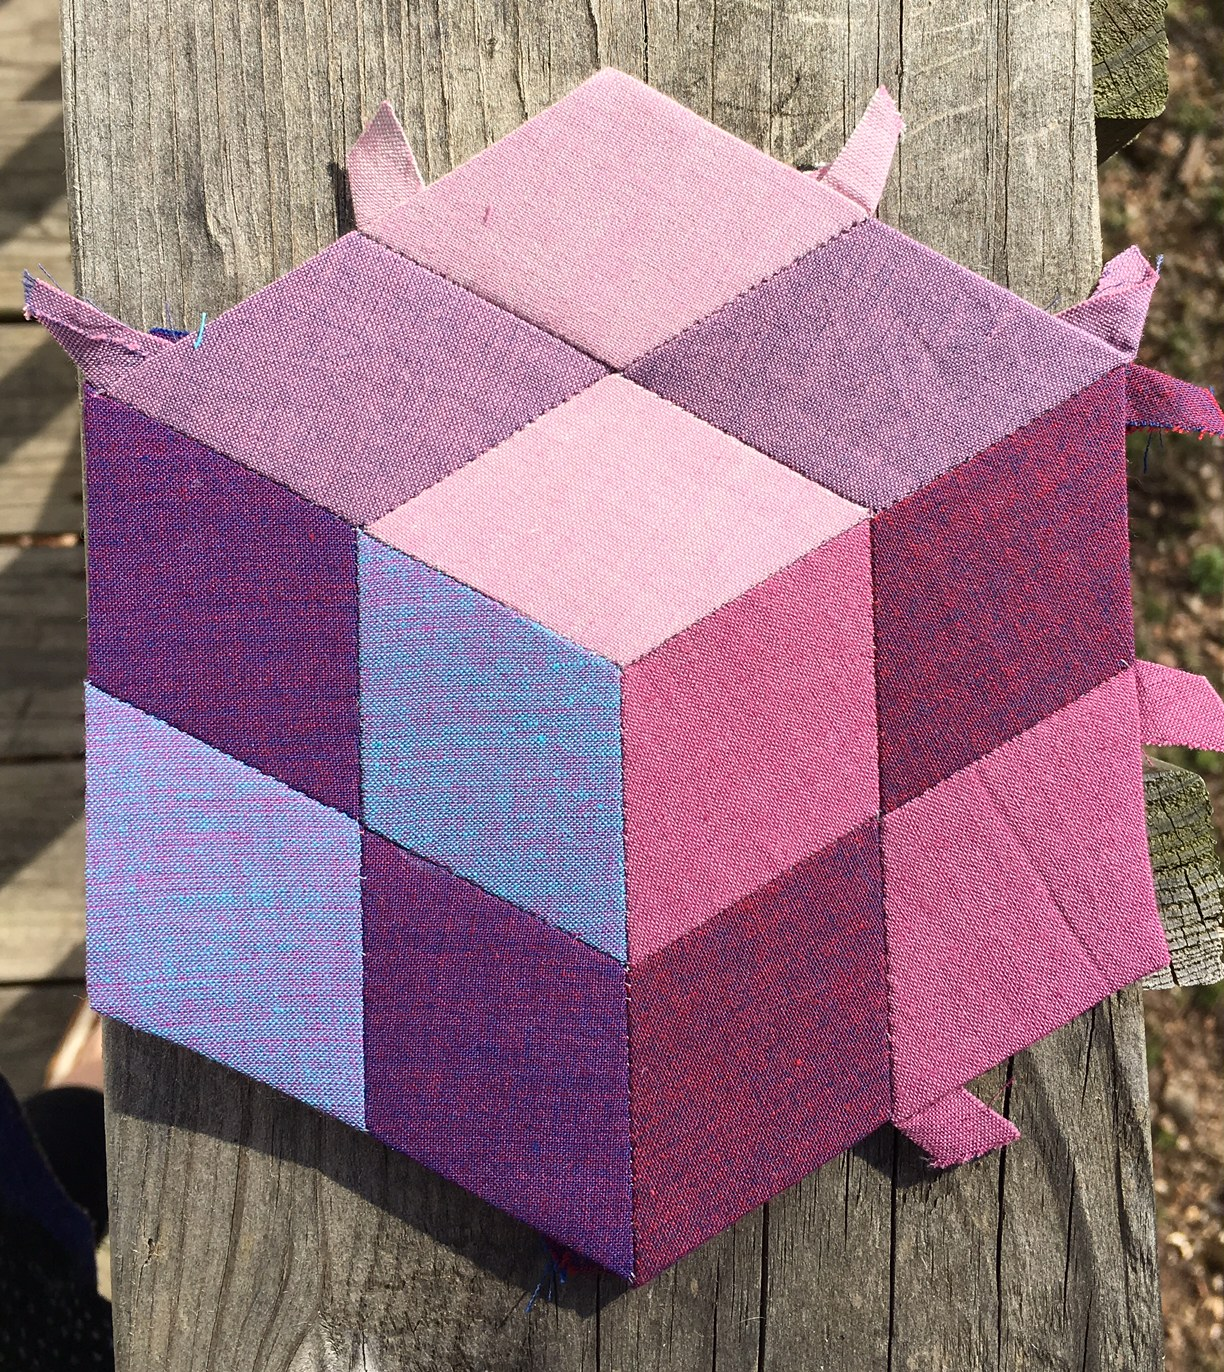 This block has a cool 3-D effect.